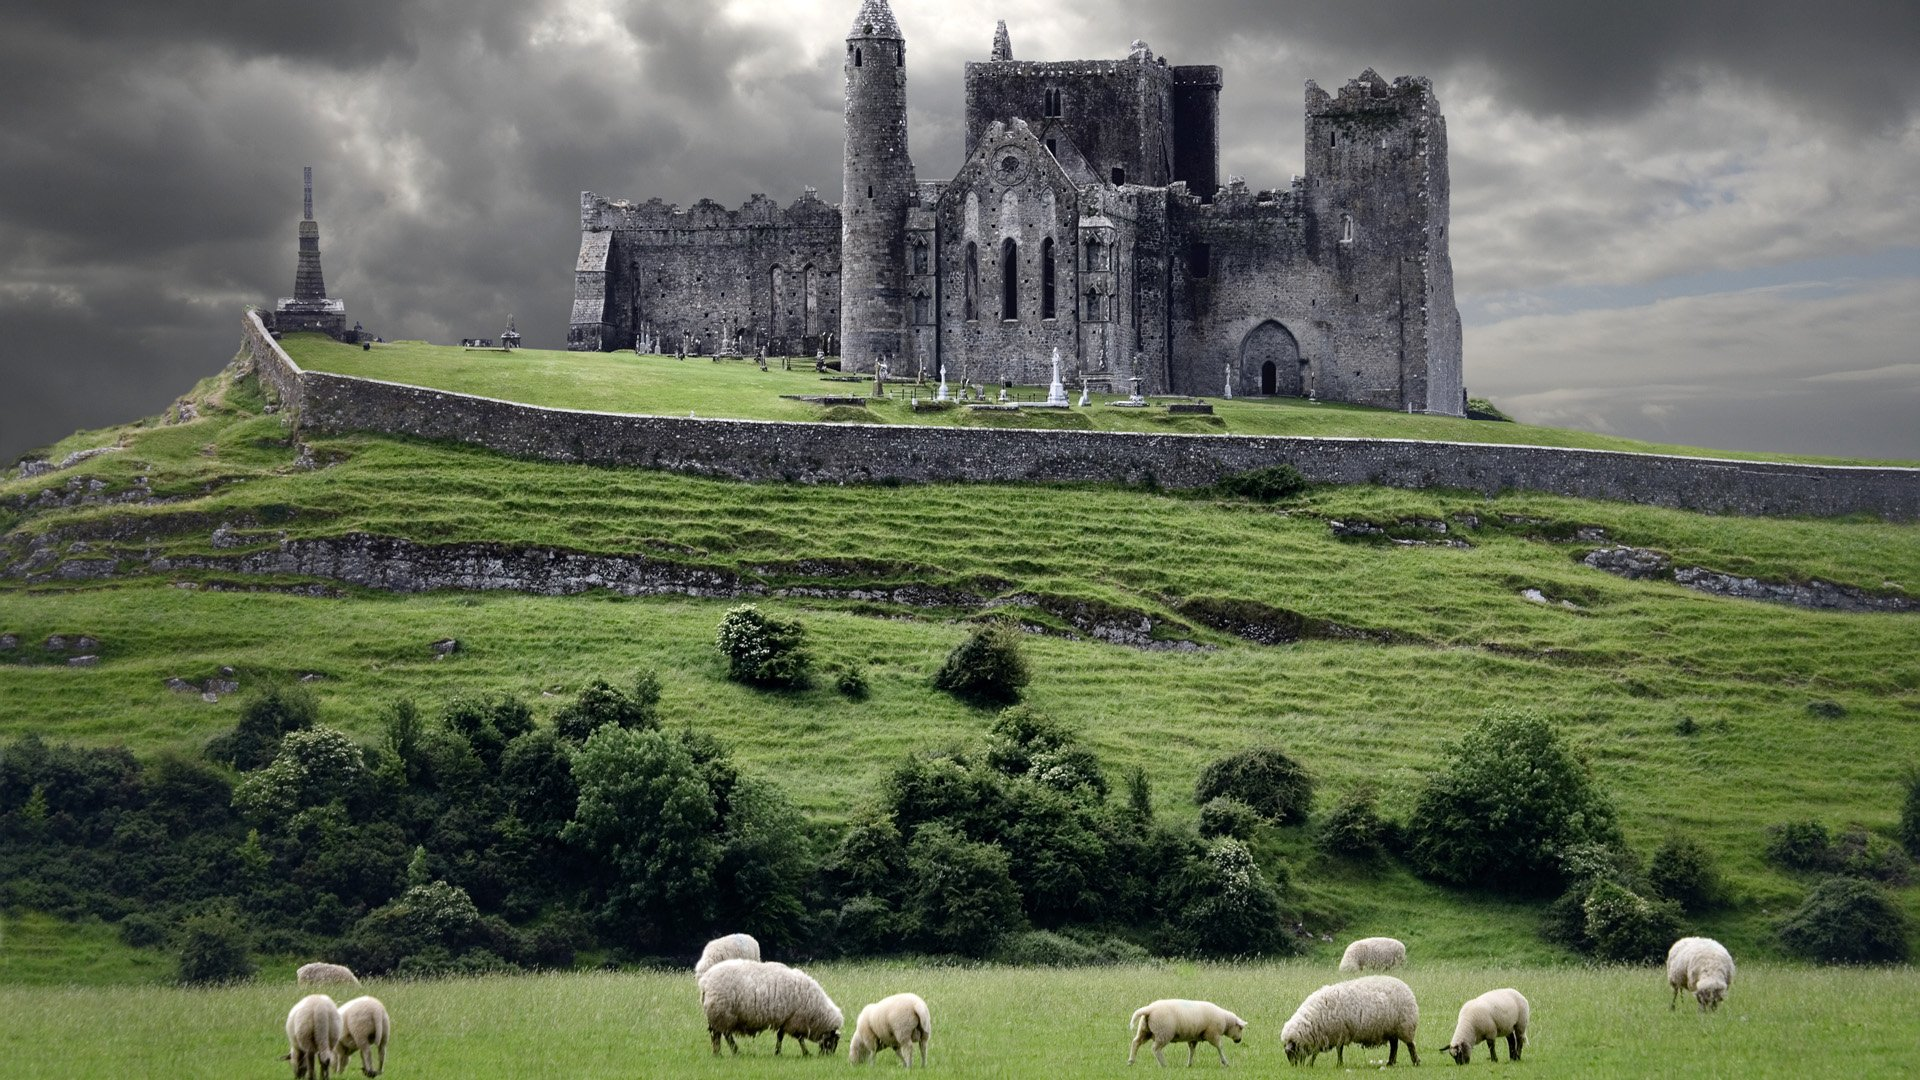 Tourist Attractions - Visitor attractions in Ireland 1920x1080第2